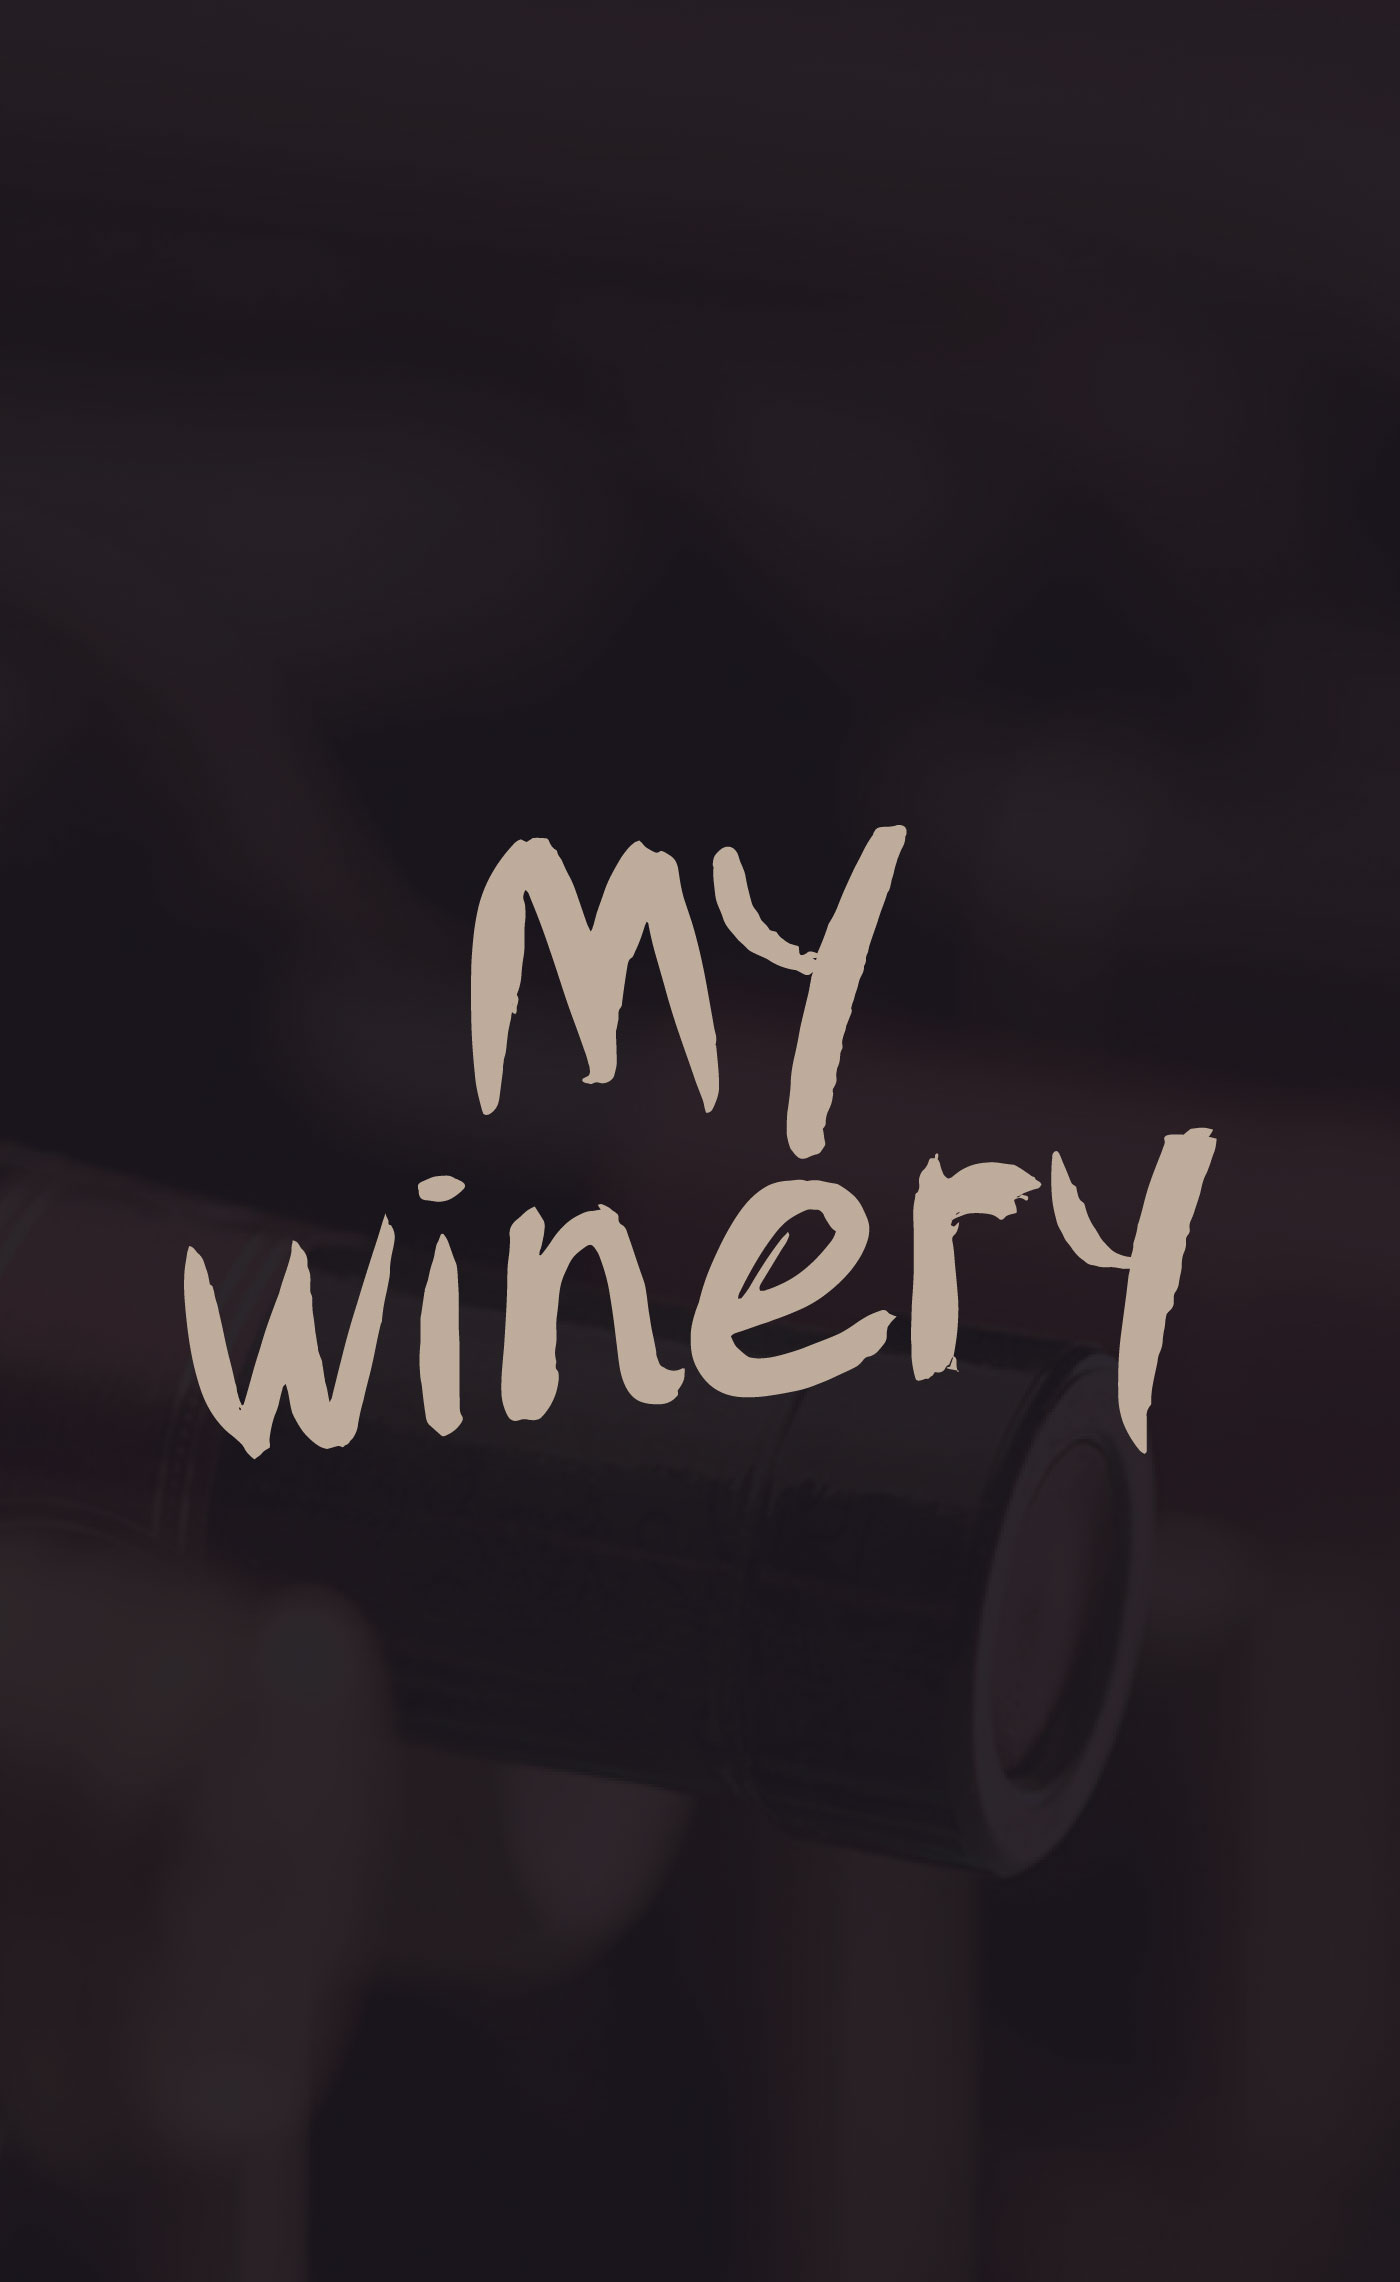 My-Winery-coversite